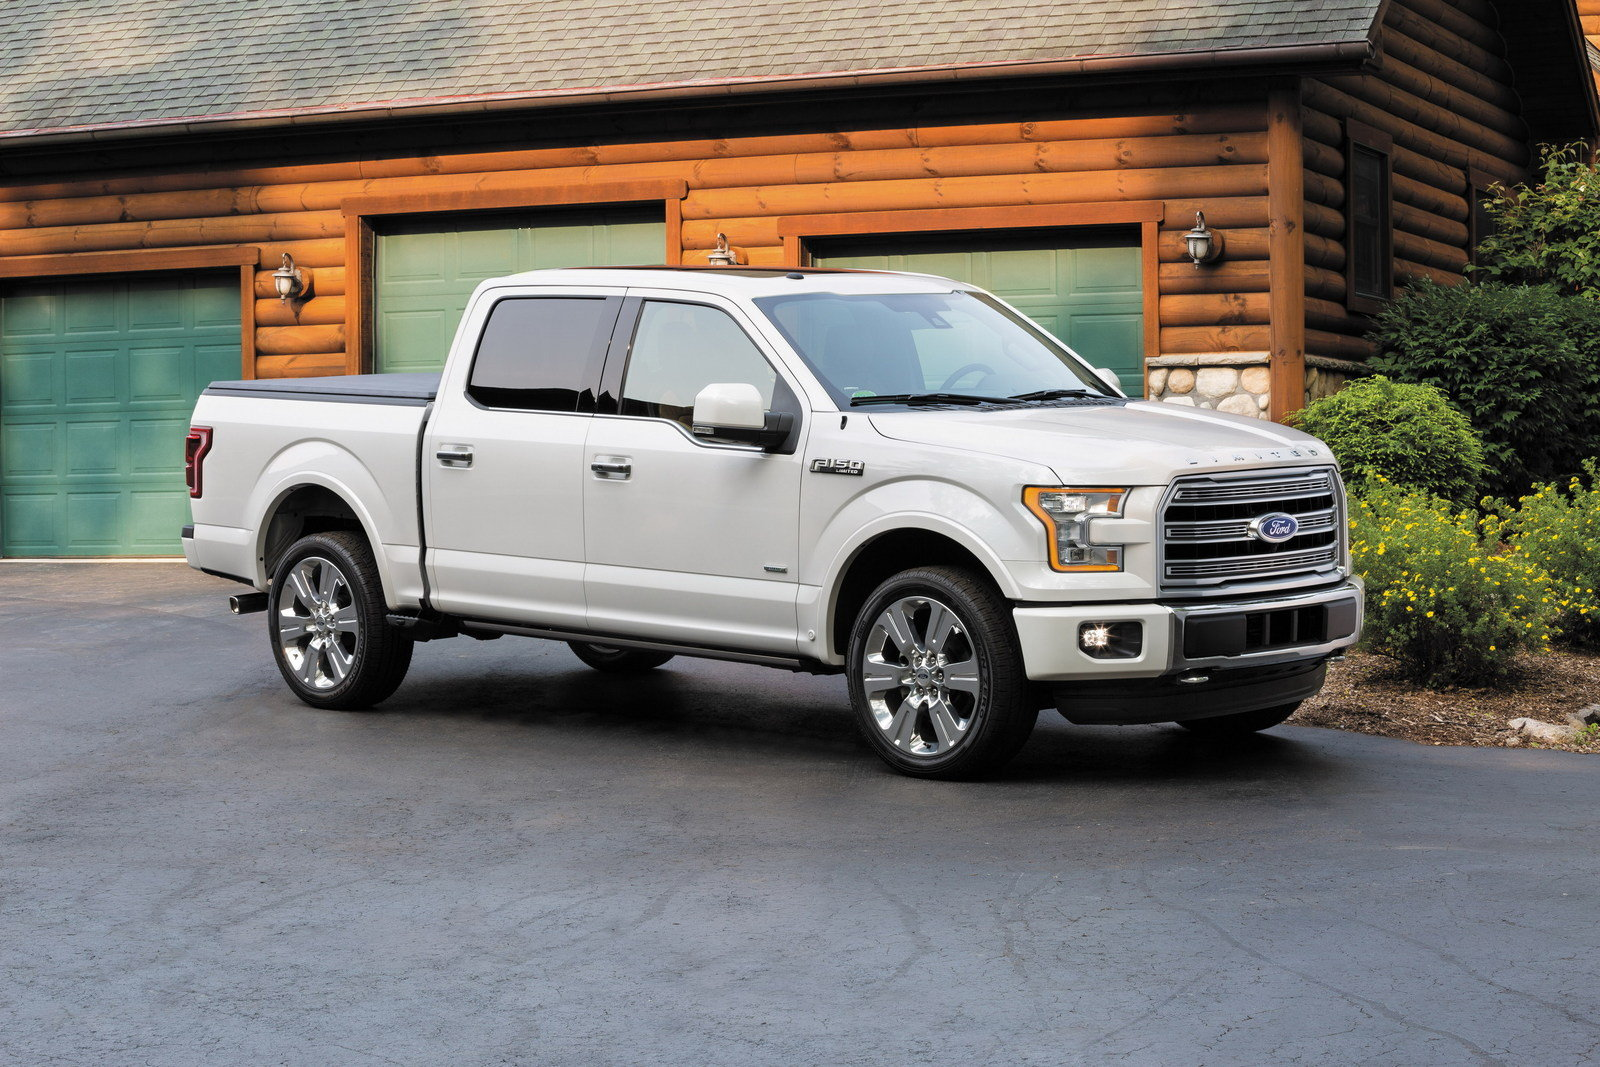 2016 ford f 150 limited picture 637607 truck review top speed. Black Bedroom Furniture Sets. Home Design Ideas